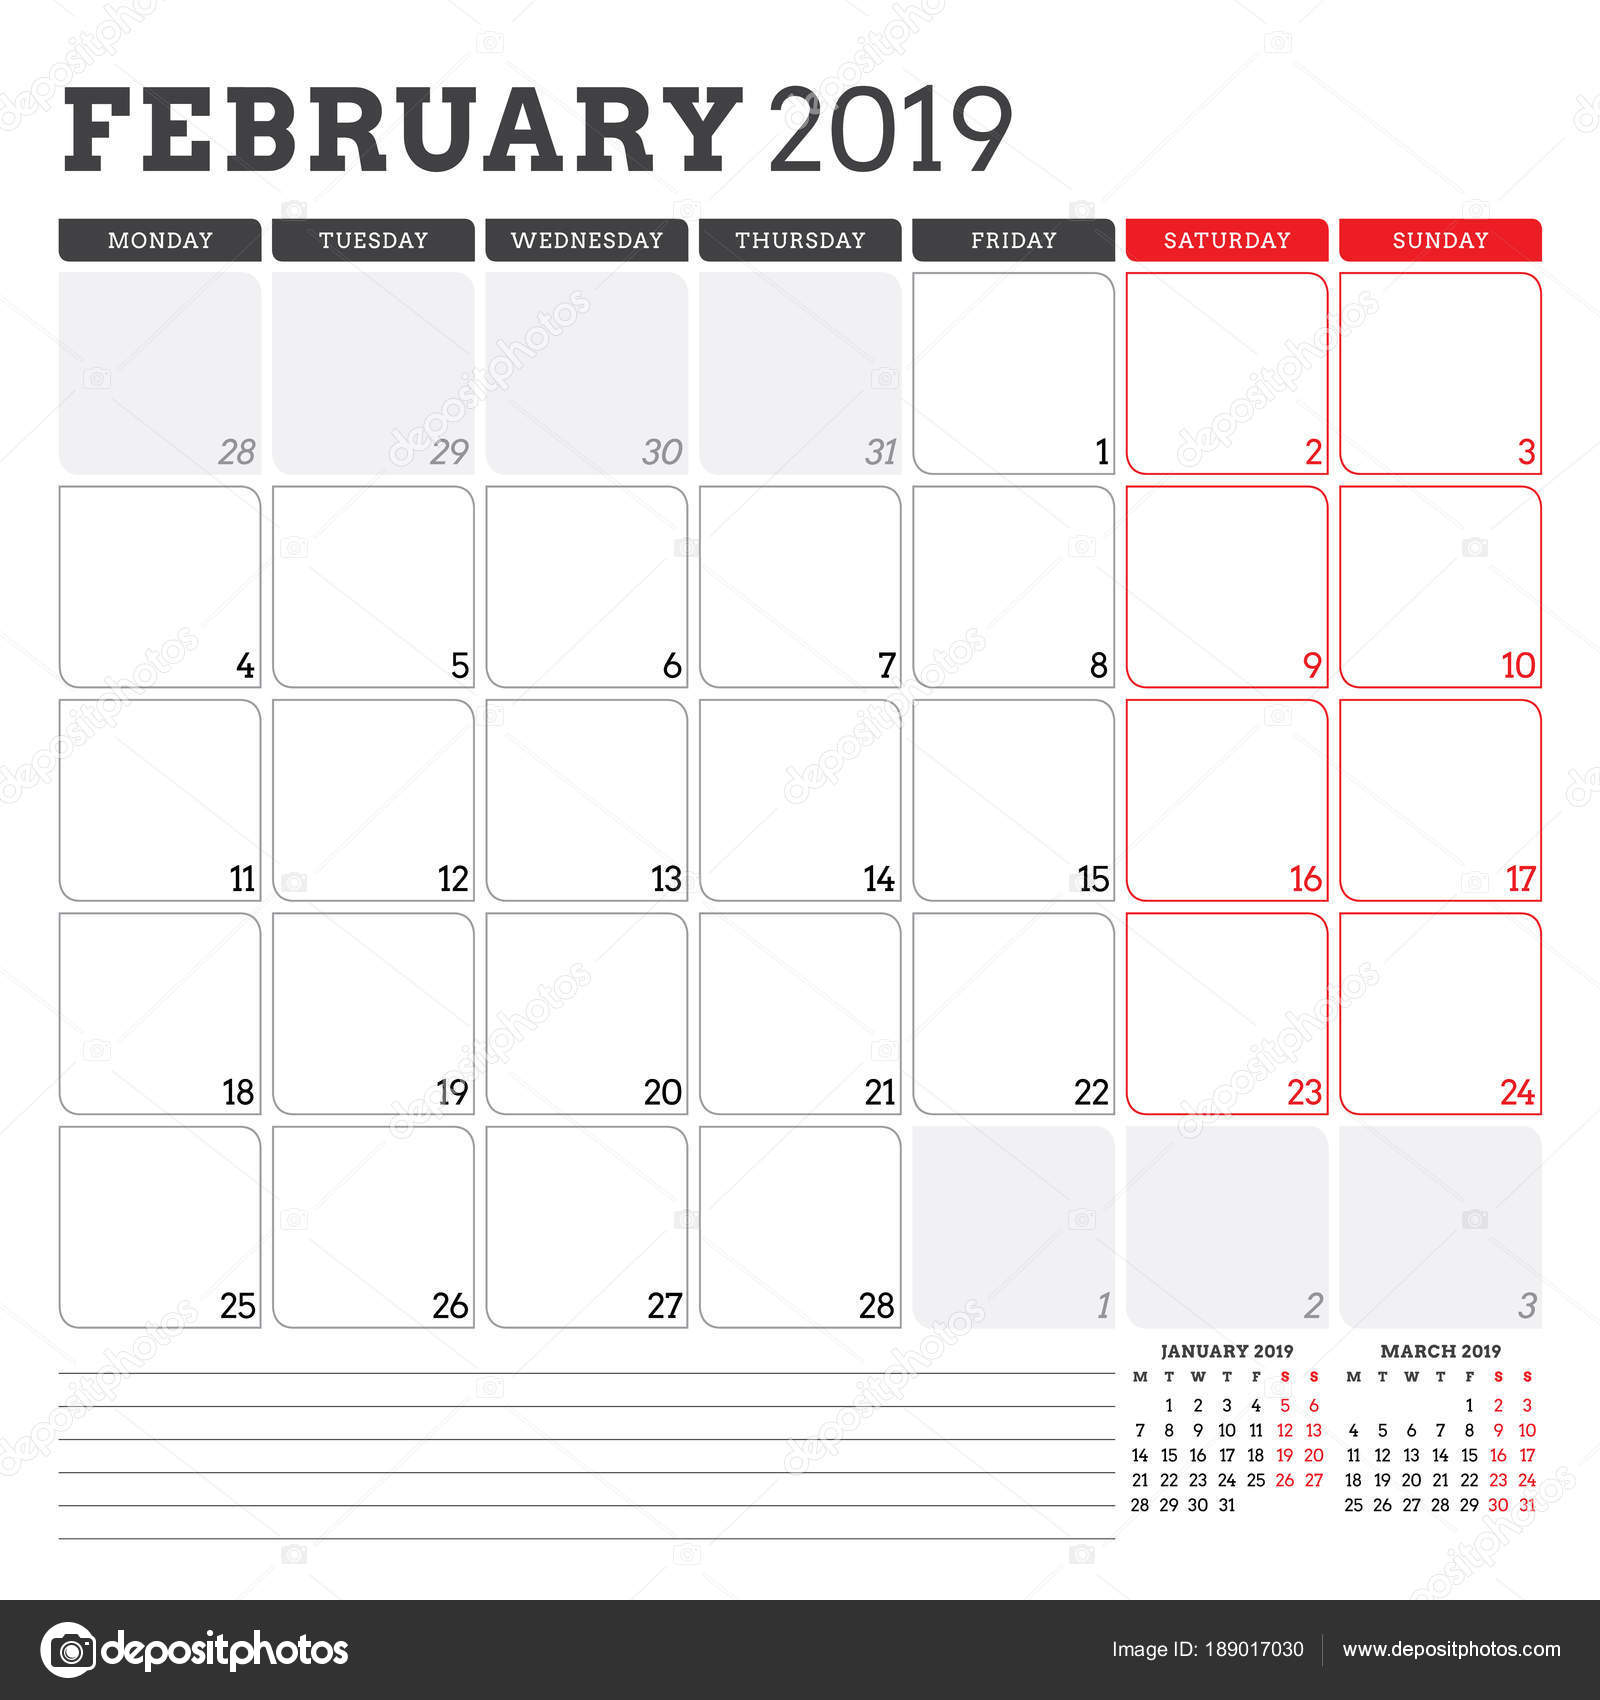 Calendar Planner For February 2019 Week Starts On Monday Printable